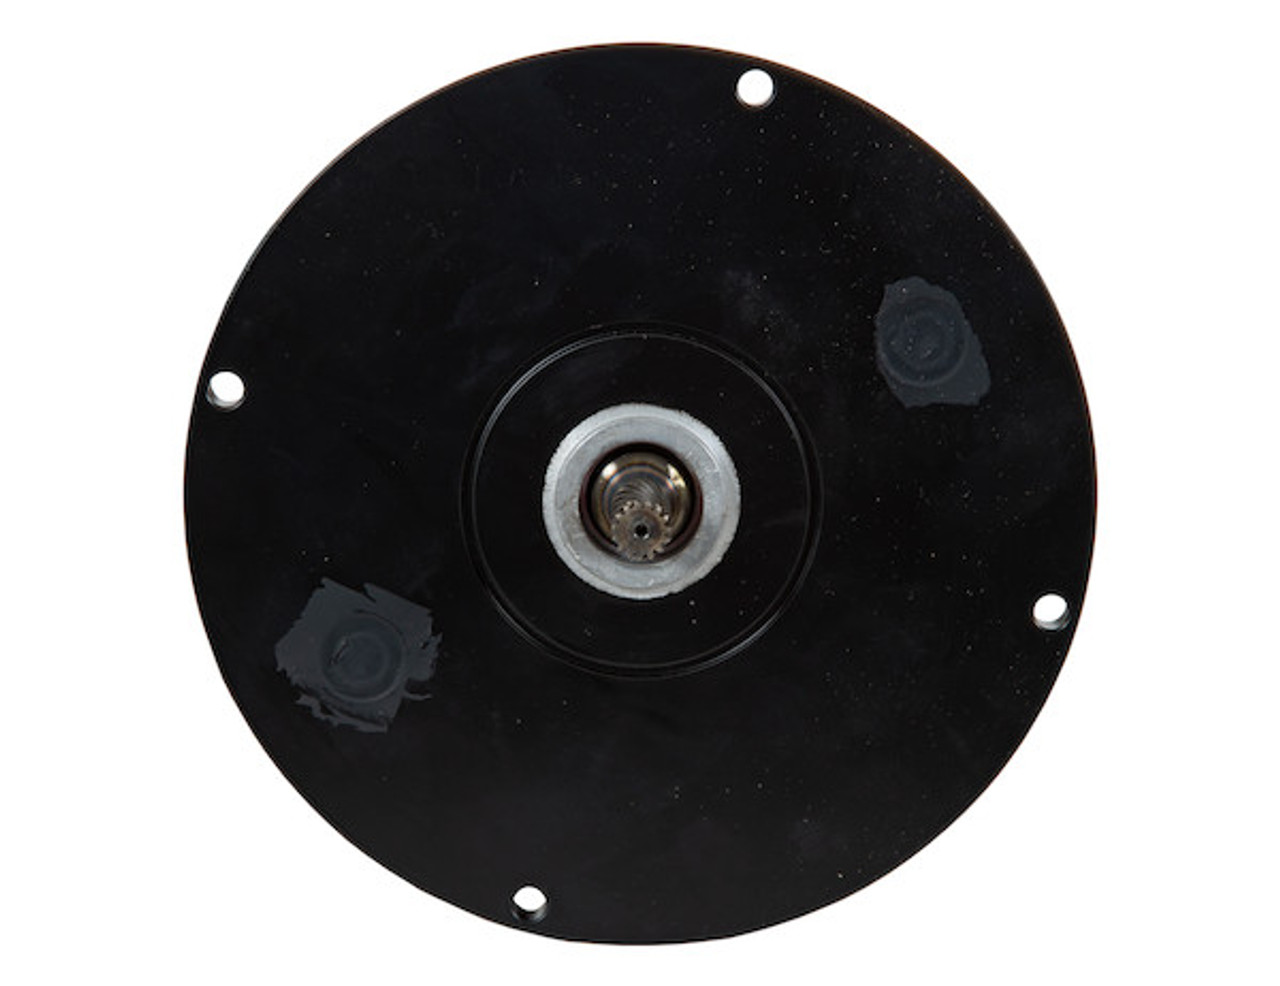 BUYERS 3014778 Replacement For Gearbox Motor 3013821 3